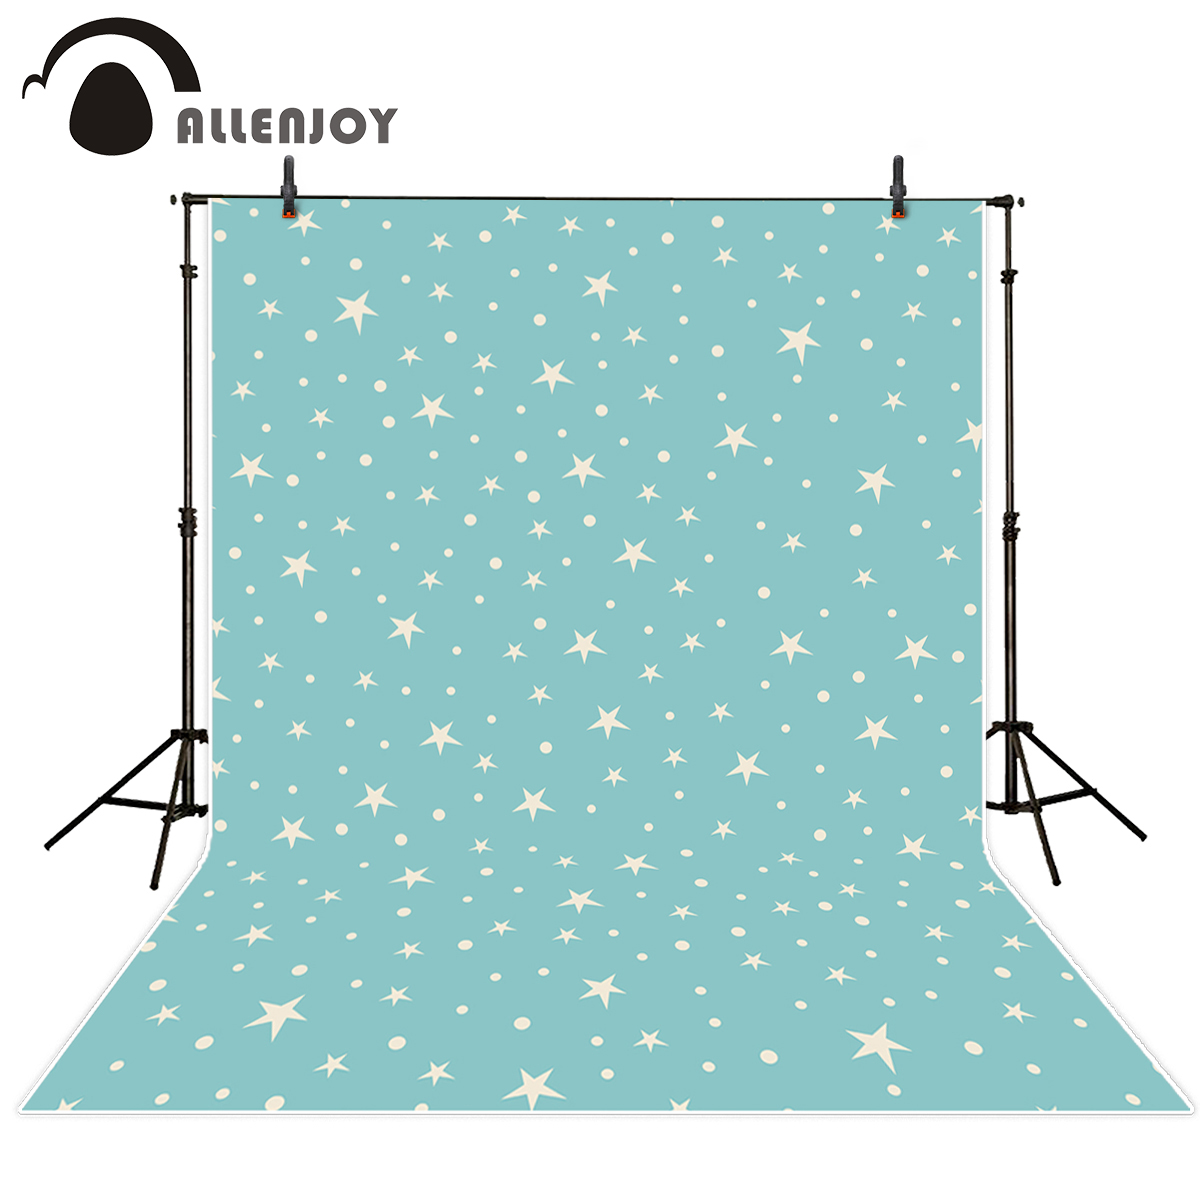 Allenjoy photography backdrop baby blue white star cute photo background photography backdrop vinyl backgrounds for photo studio reprap lulzbot 3d printer printering prusa mendel mendelmax build plate heated bed y axis plate mm bed plate kit set